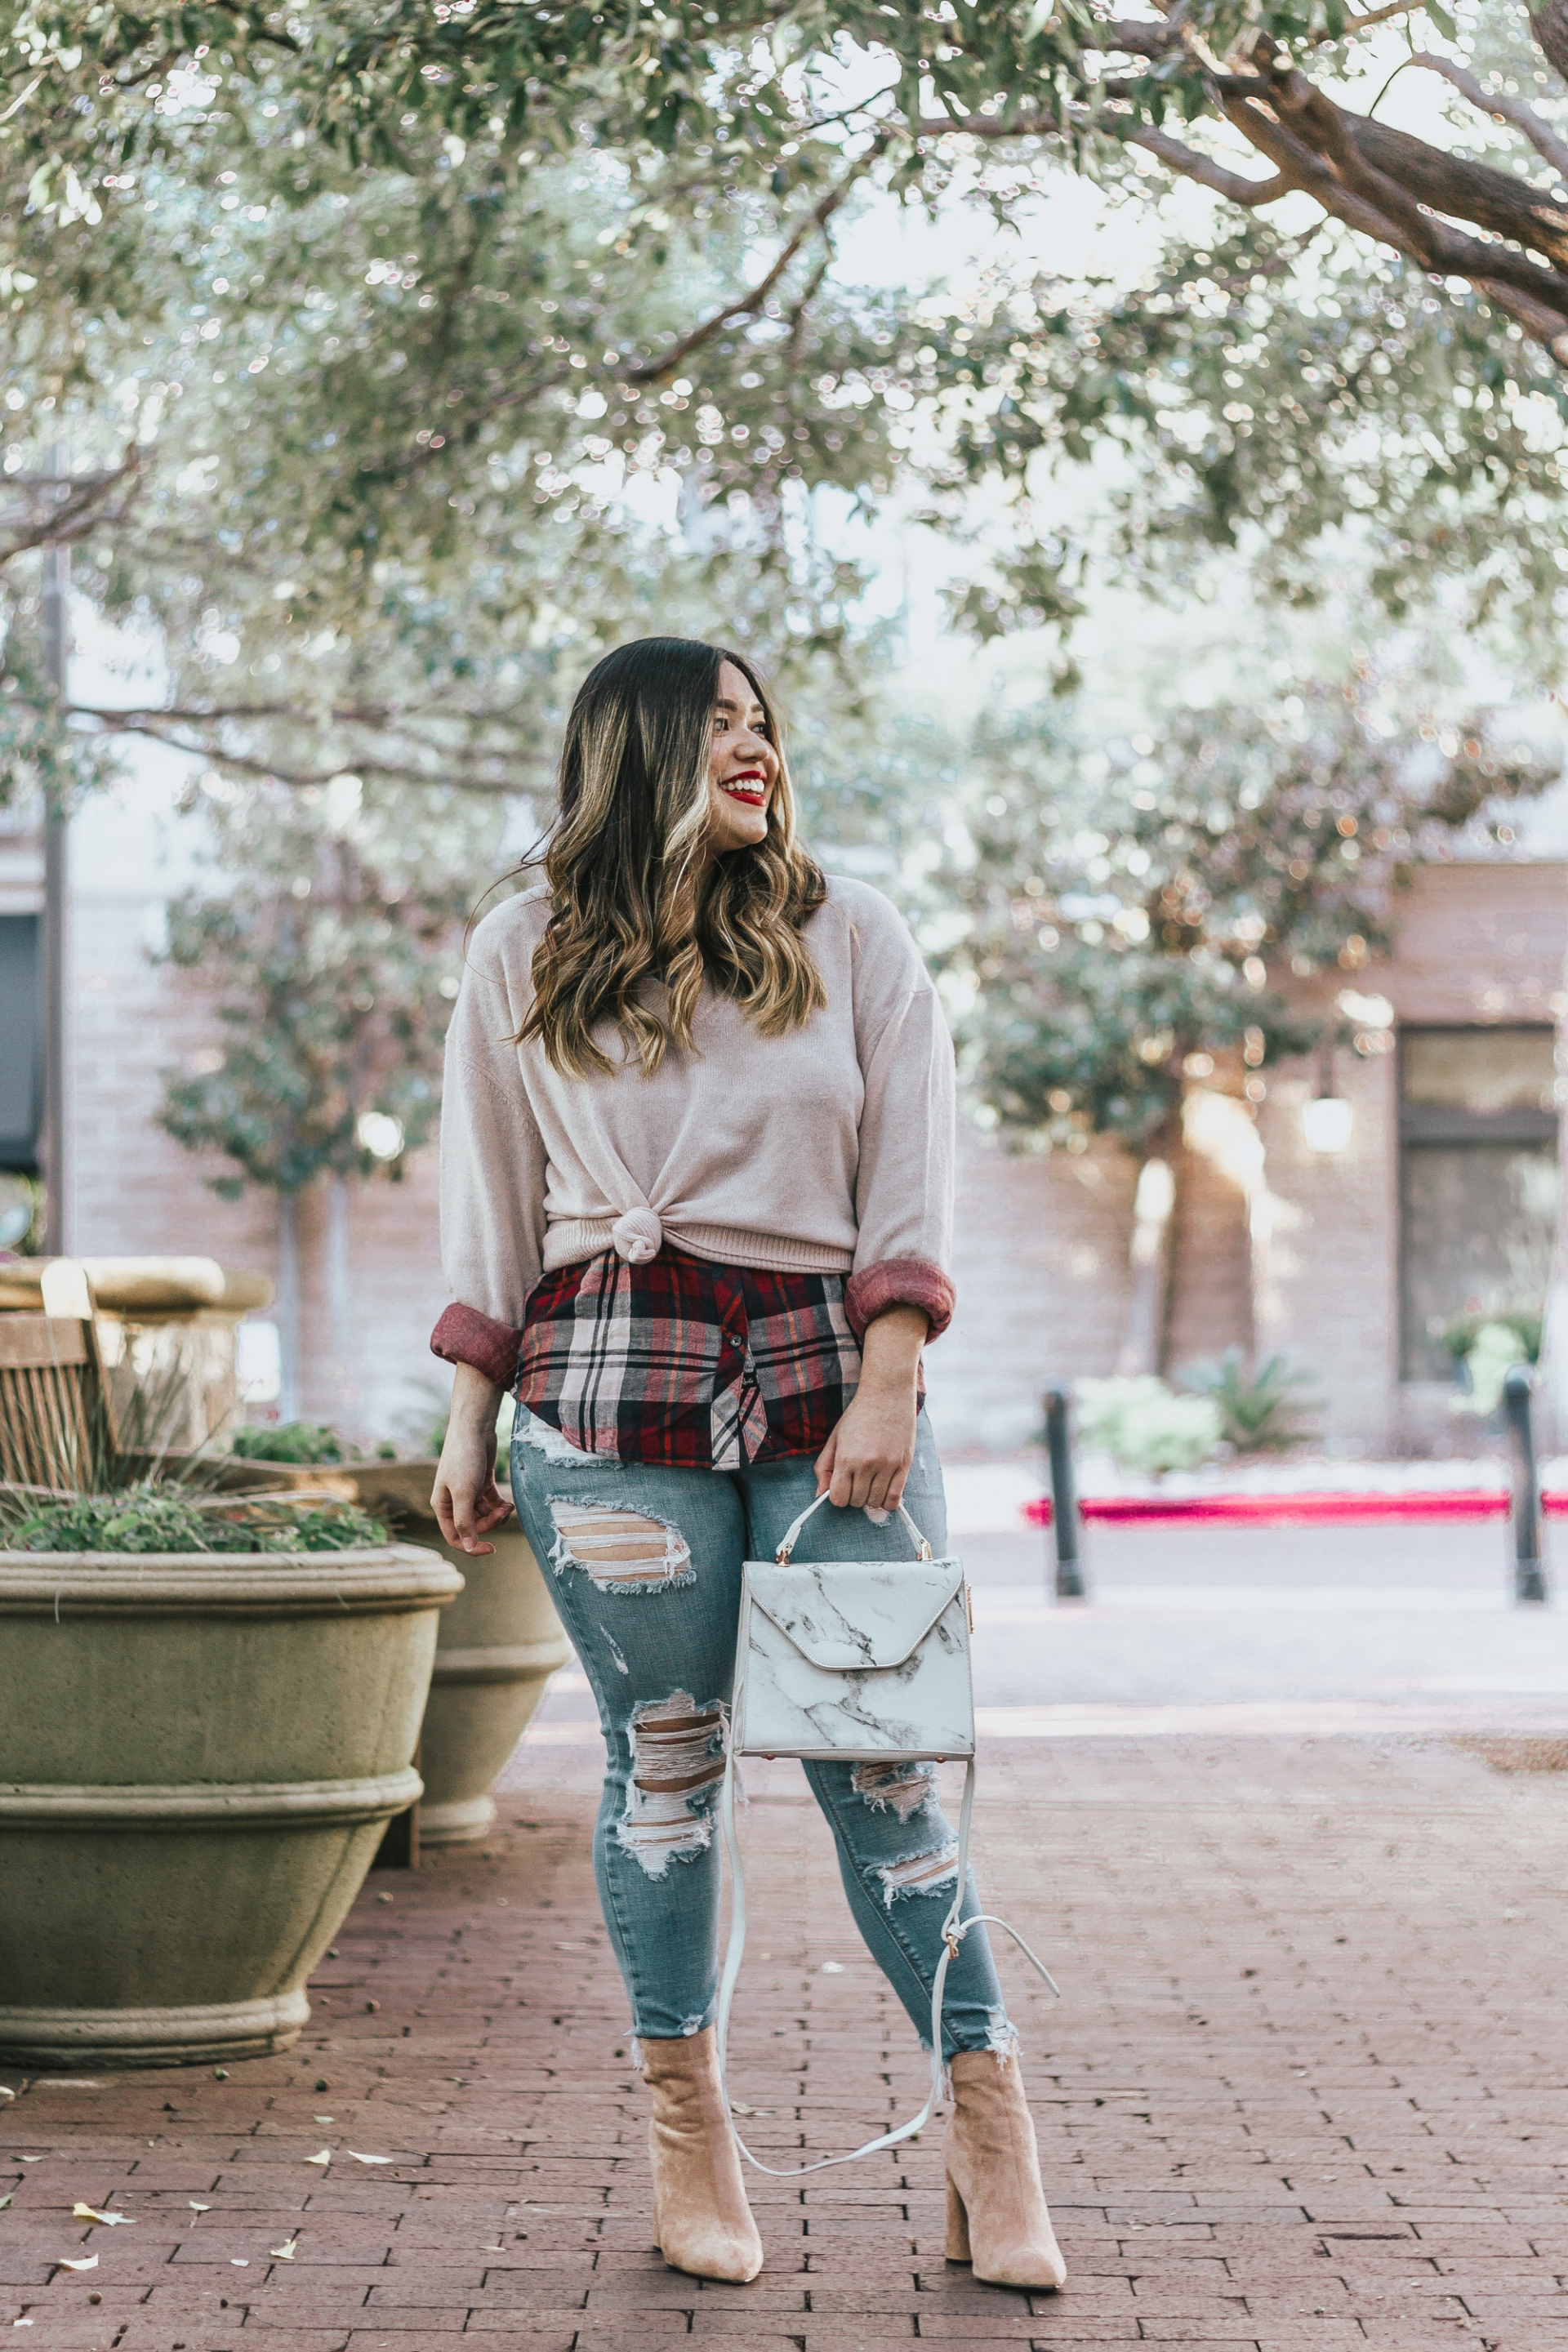 Stitch Fix Fall Outfit Wardrobe Rails Kendra Button Down Top 360 Cashmere Lois Cashmere V Neck Sweater Plaid Flannel Shirt Sweater Combo Distressed Jeans Express Nude Booties Marble Purse Bag